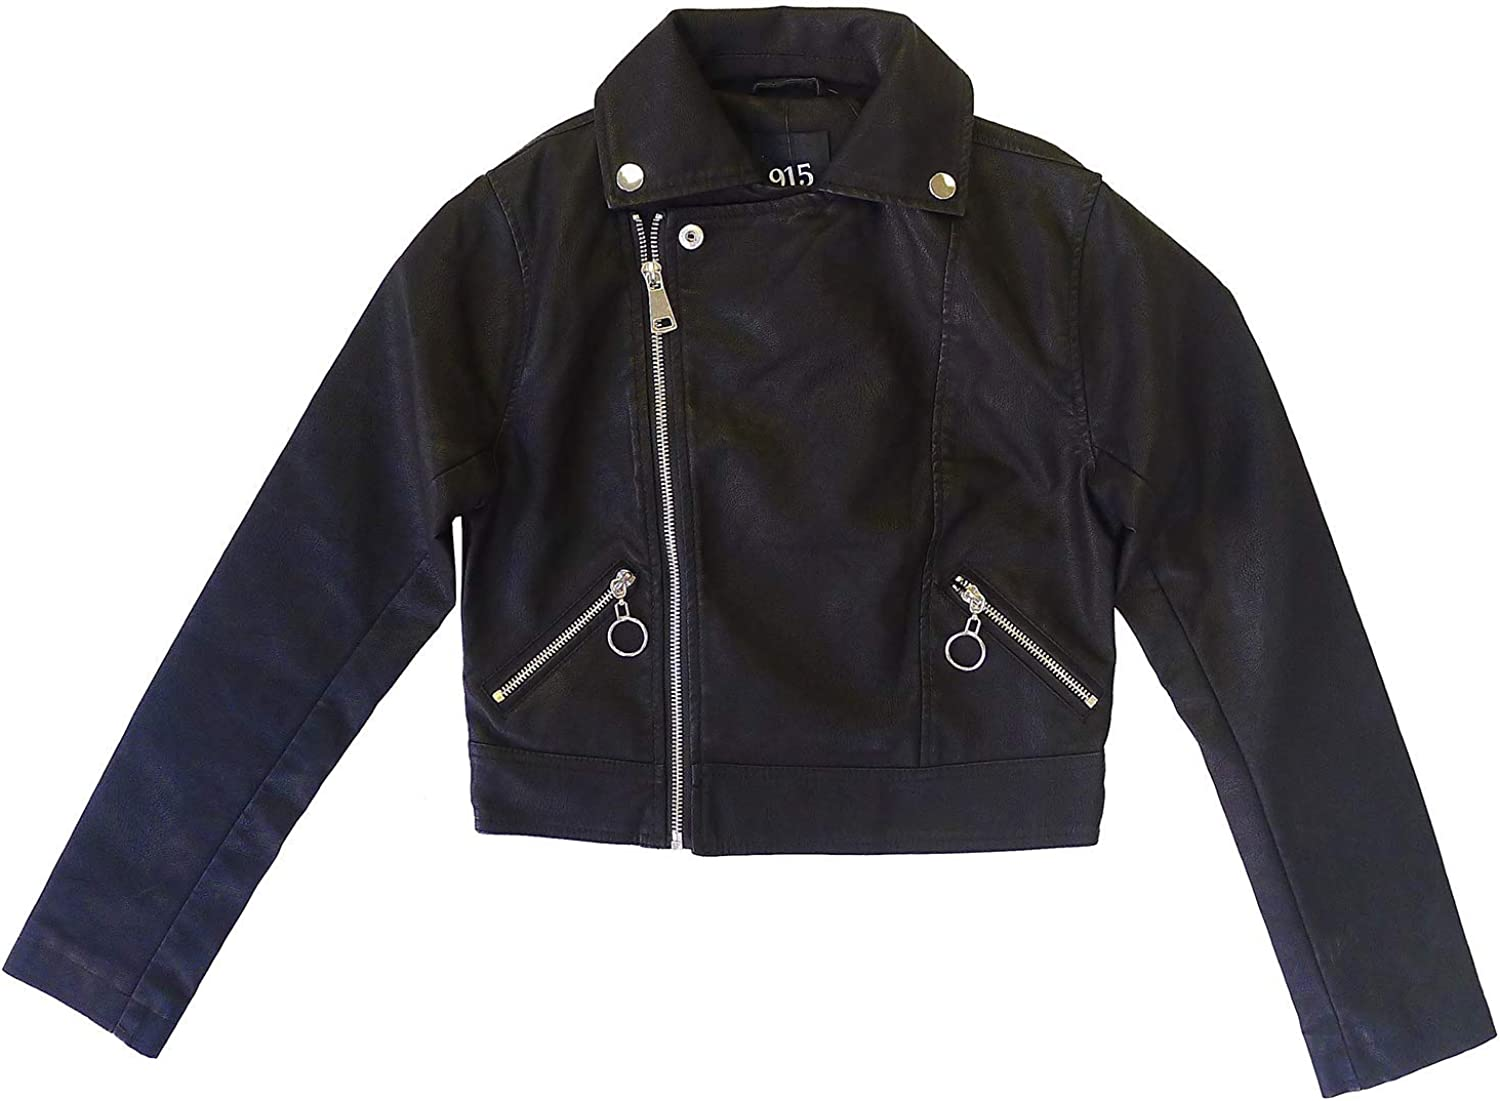 Girls New Look Leather Look Crop Biker Jacket Zip Fashion Coat Sizes from 9 to 15 Years